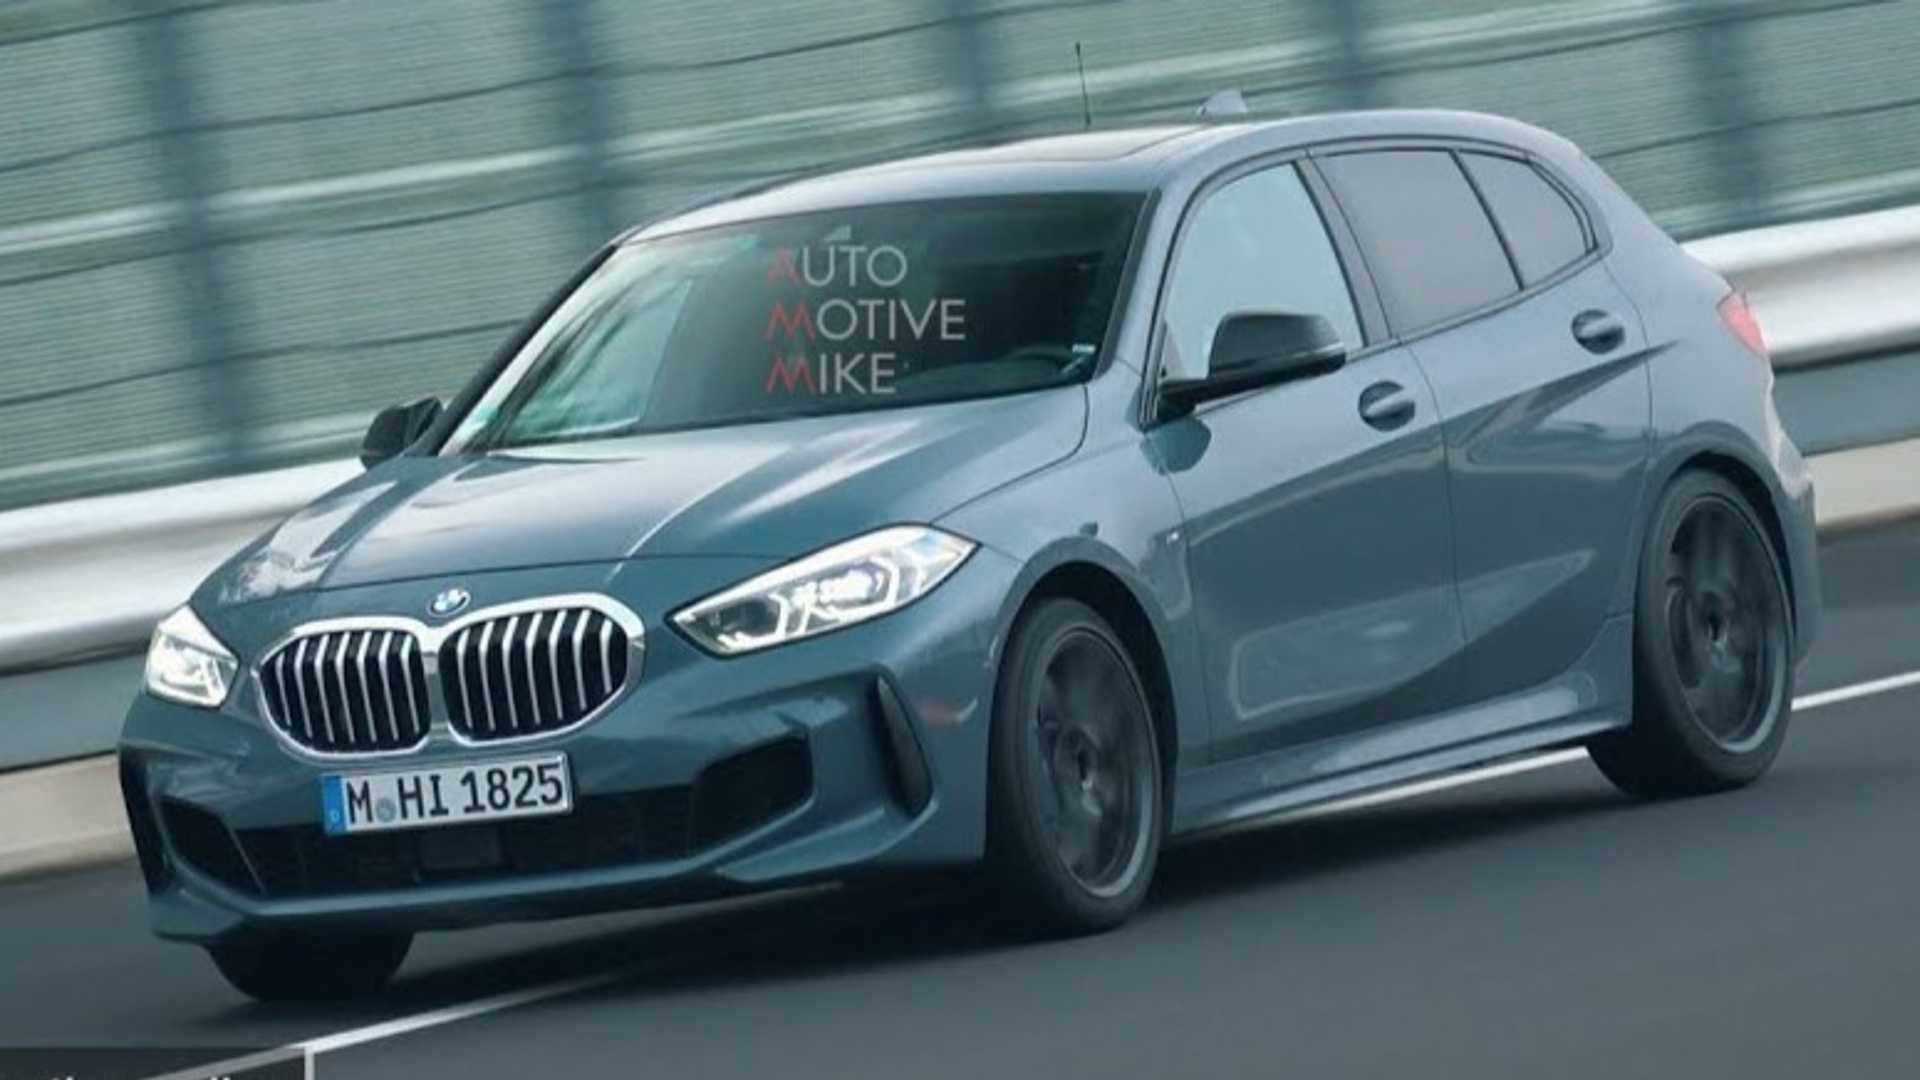 BMW 128ti Looks Like A Proper FWD Hot Hatch At Nurburgring